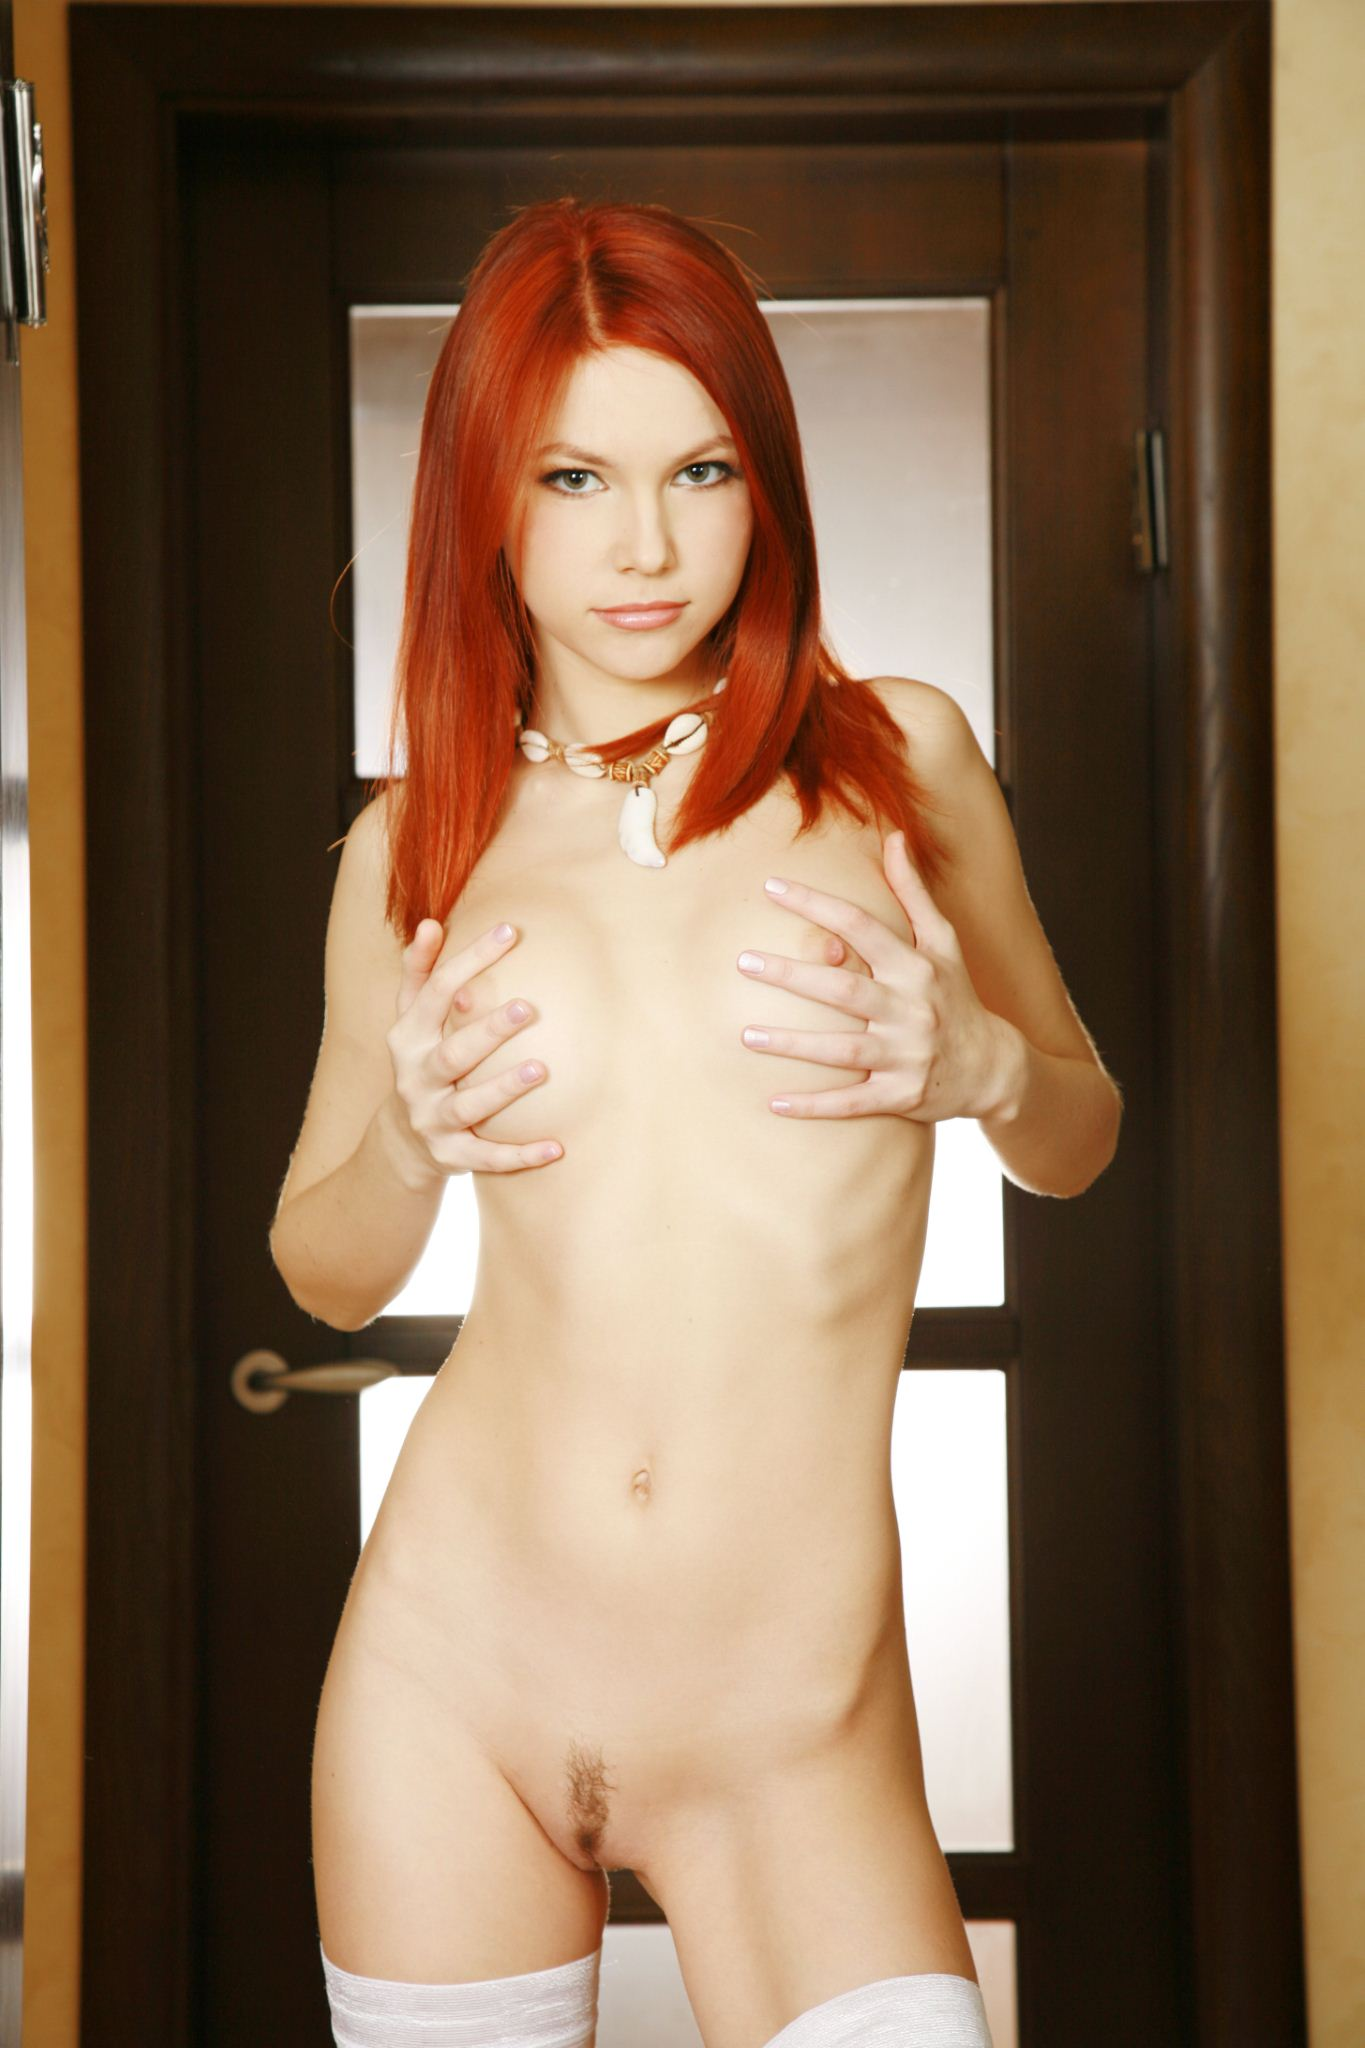 Opinion obvious. small tits redhead nude question remarkable, rather